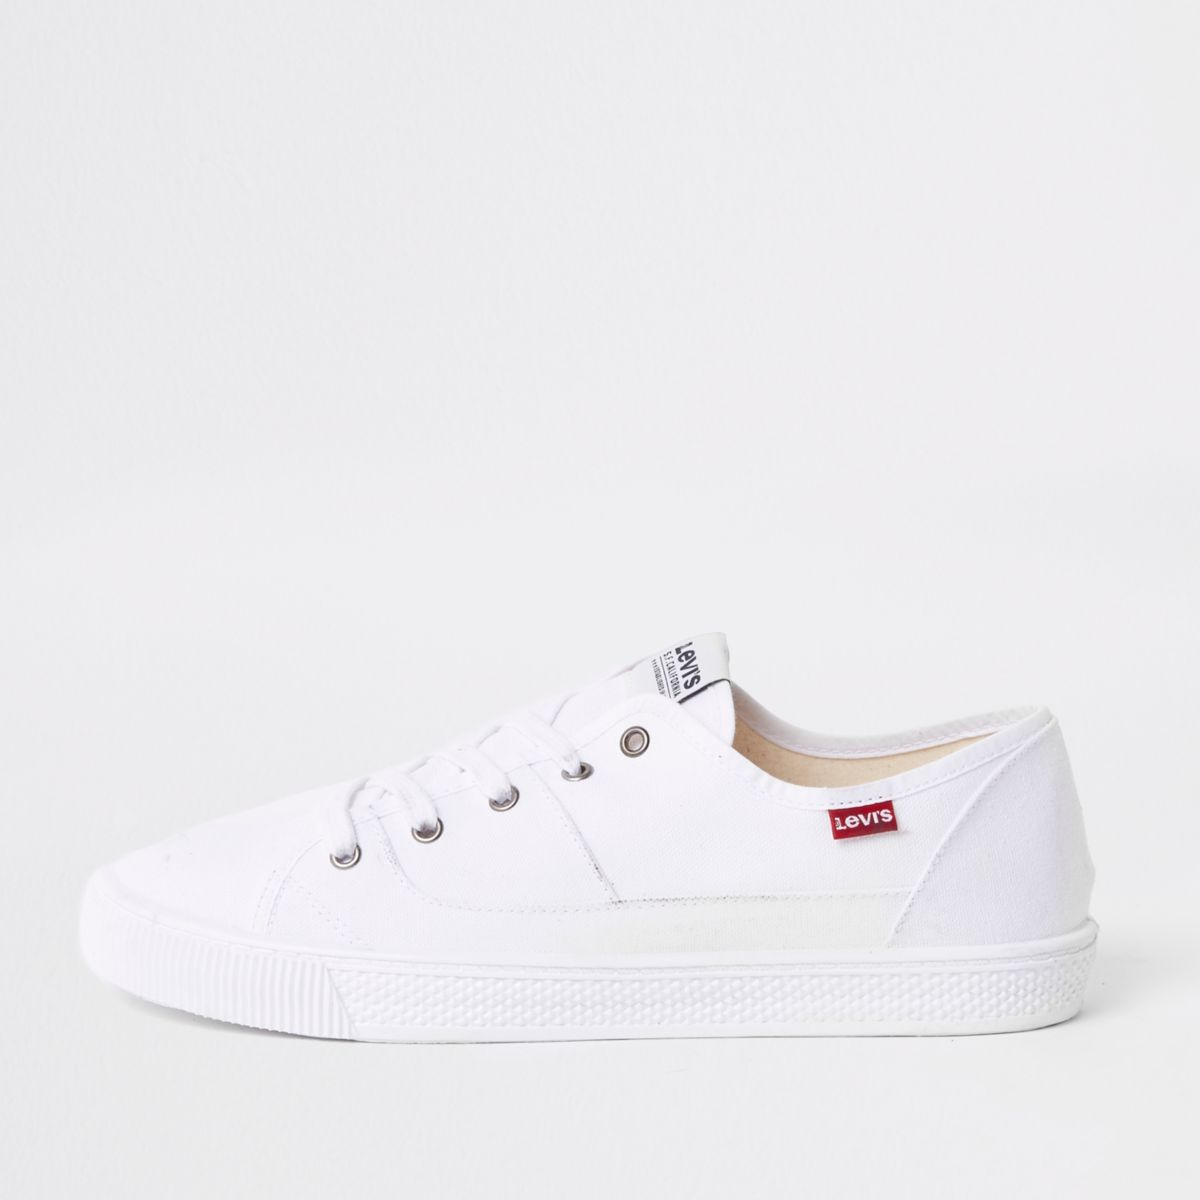 Levi's white lace-up sneakers